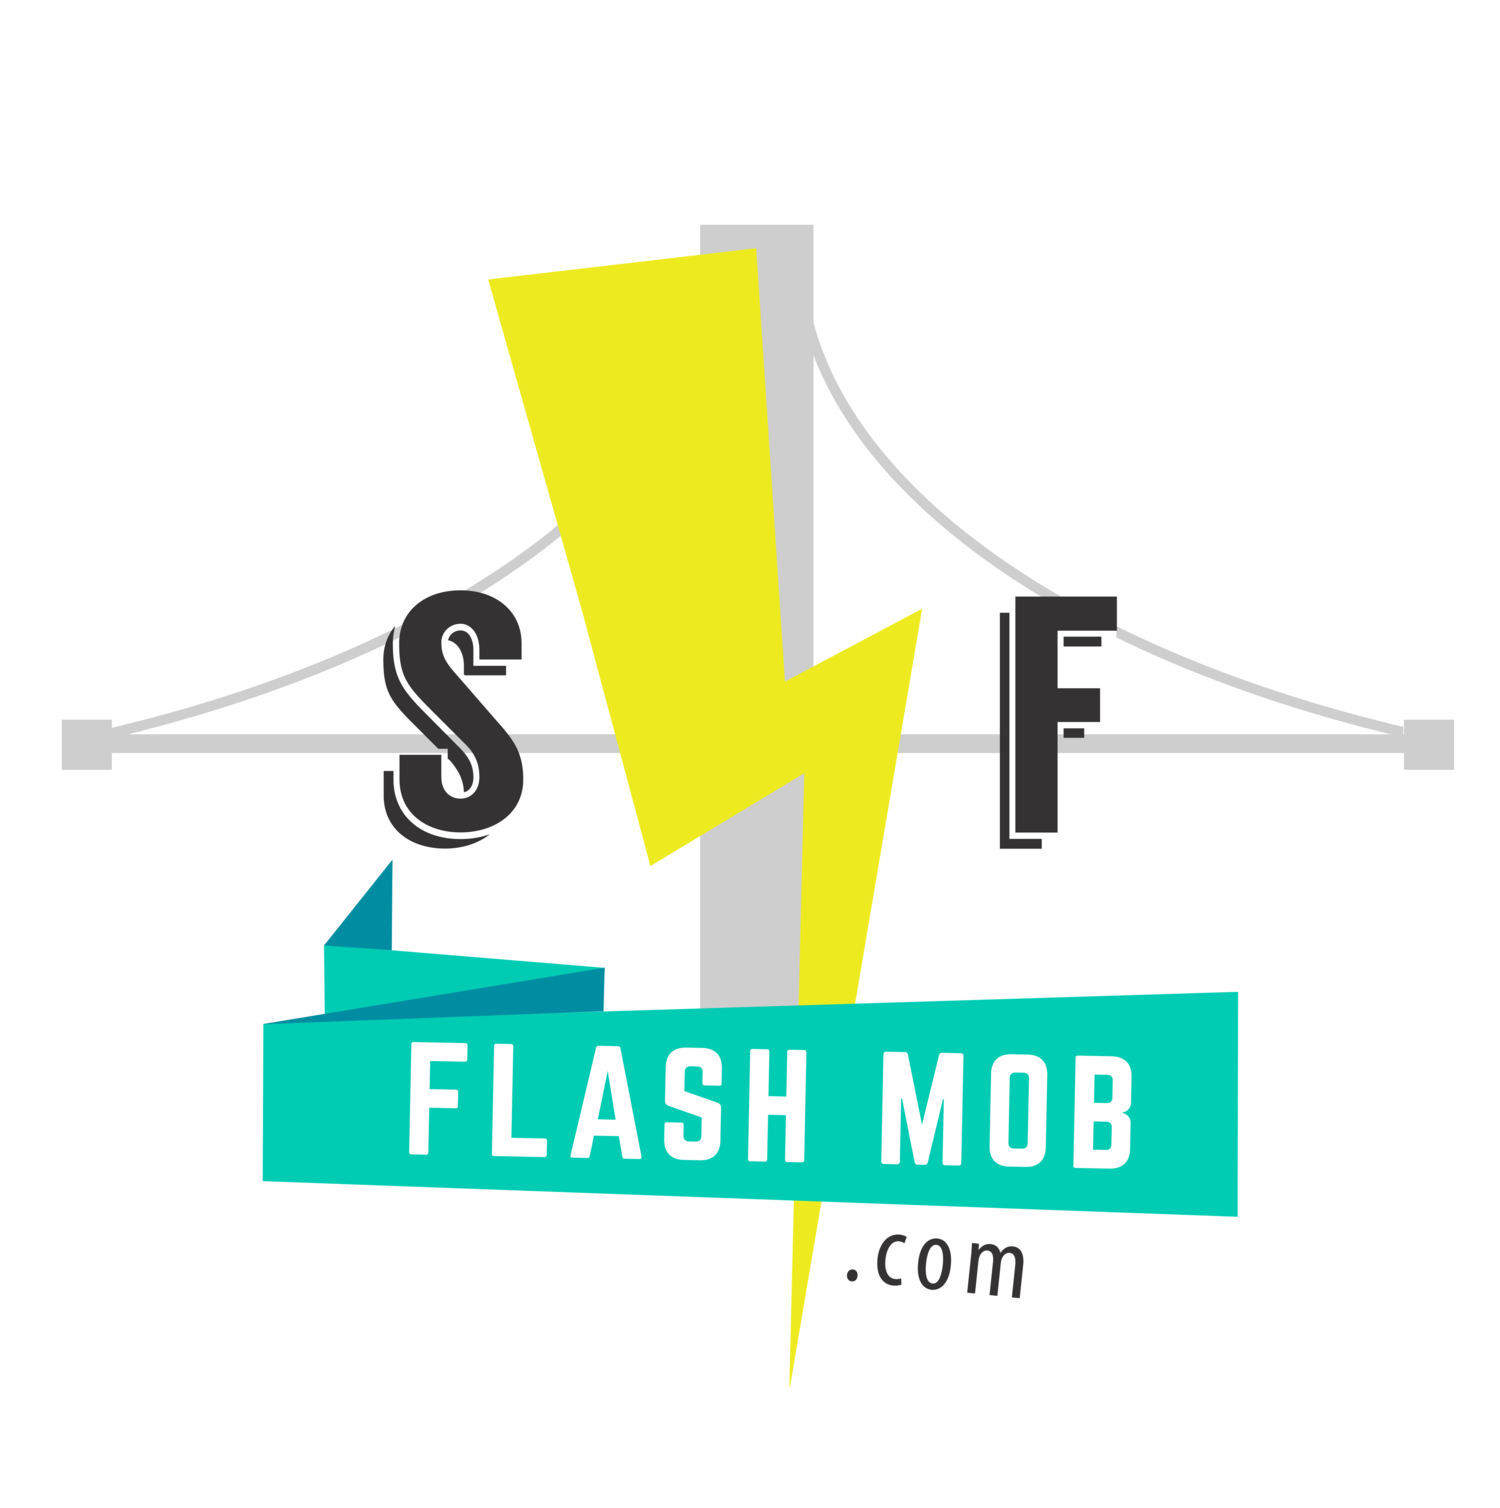 SF FlashMob.com